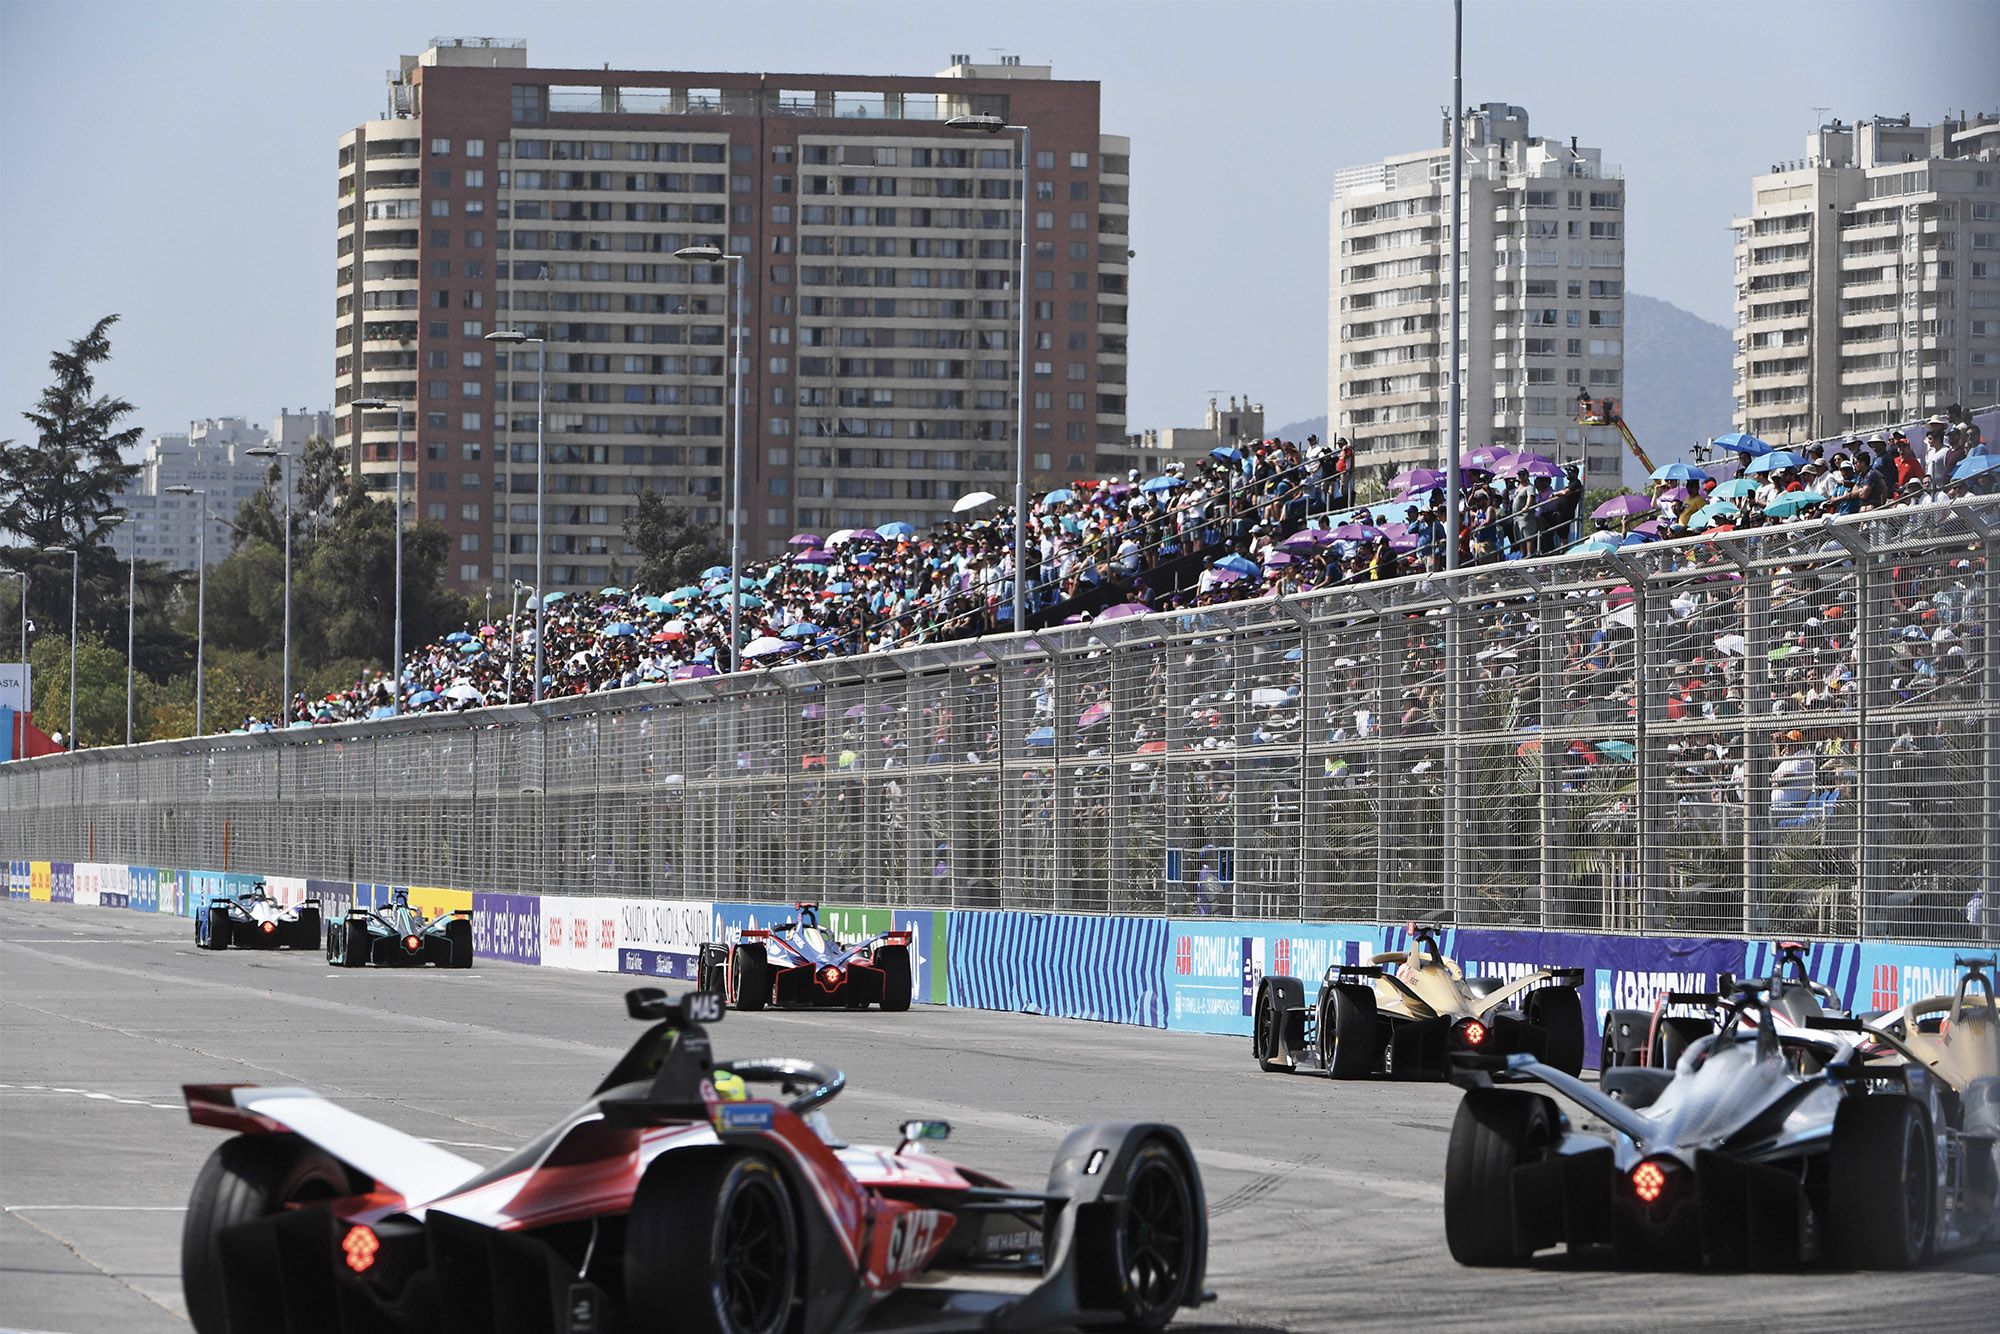 PARQUE O'HIGGINS CIRCUIT, CHILE - JANUARY 18: Maximilian Günther (DEU), BMW I Andretti Motorsports, BMW iFE.20 leads Mitch Evans (NZL), Panasonic Jaguar Racing, Jaguar I-Type 4 and Pascal Wehrlein (DEU), Mahindra Racing, M6Electro during the Santiago E-prix at Parque O'Higgins Circuit on January 18, 2020 in Parque O'Higgins Circuit, Chile.